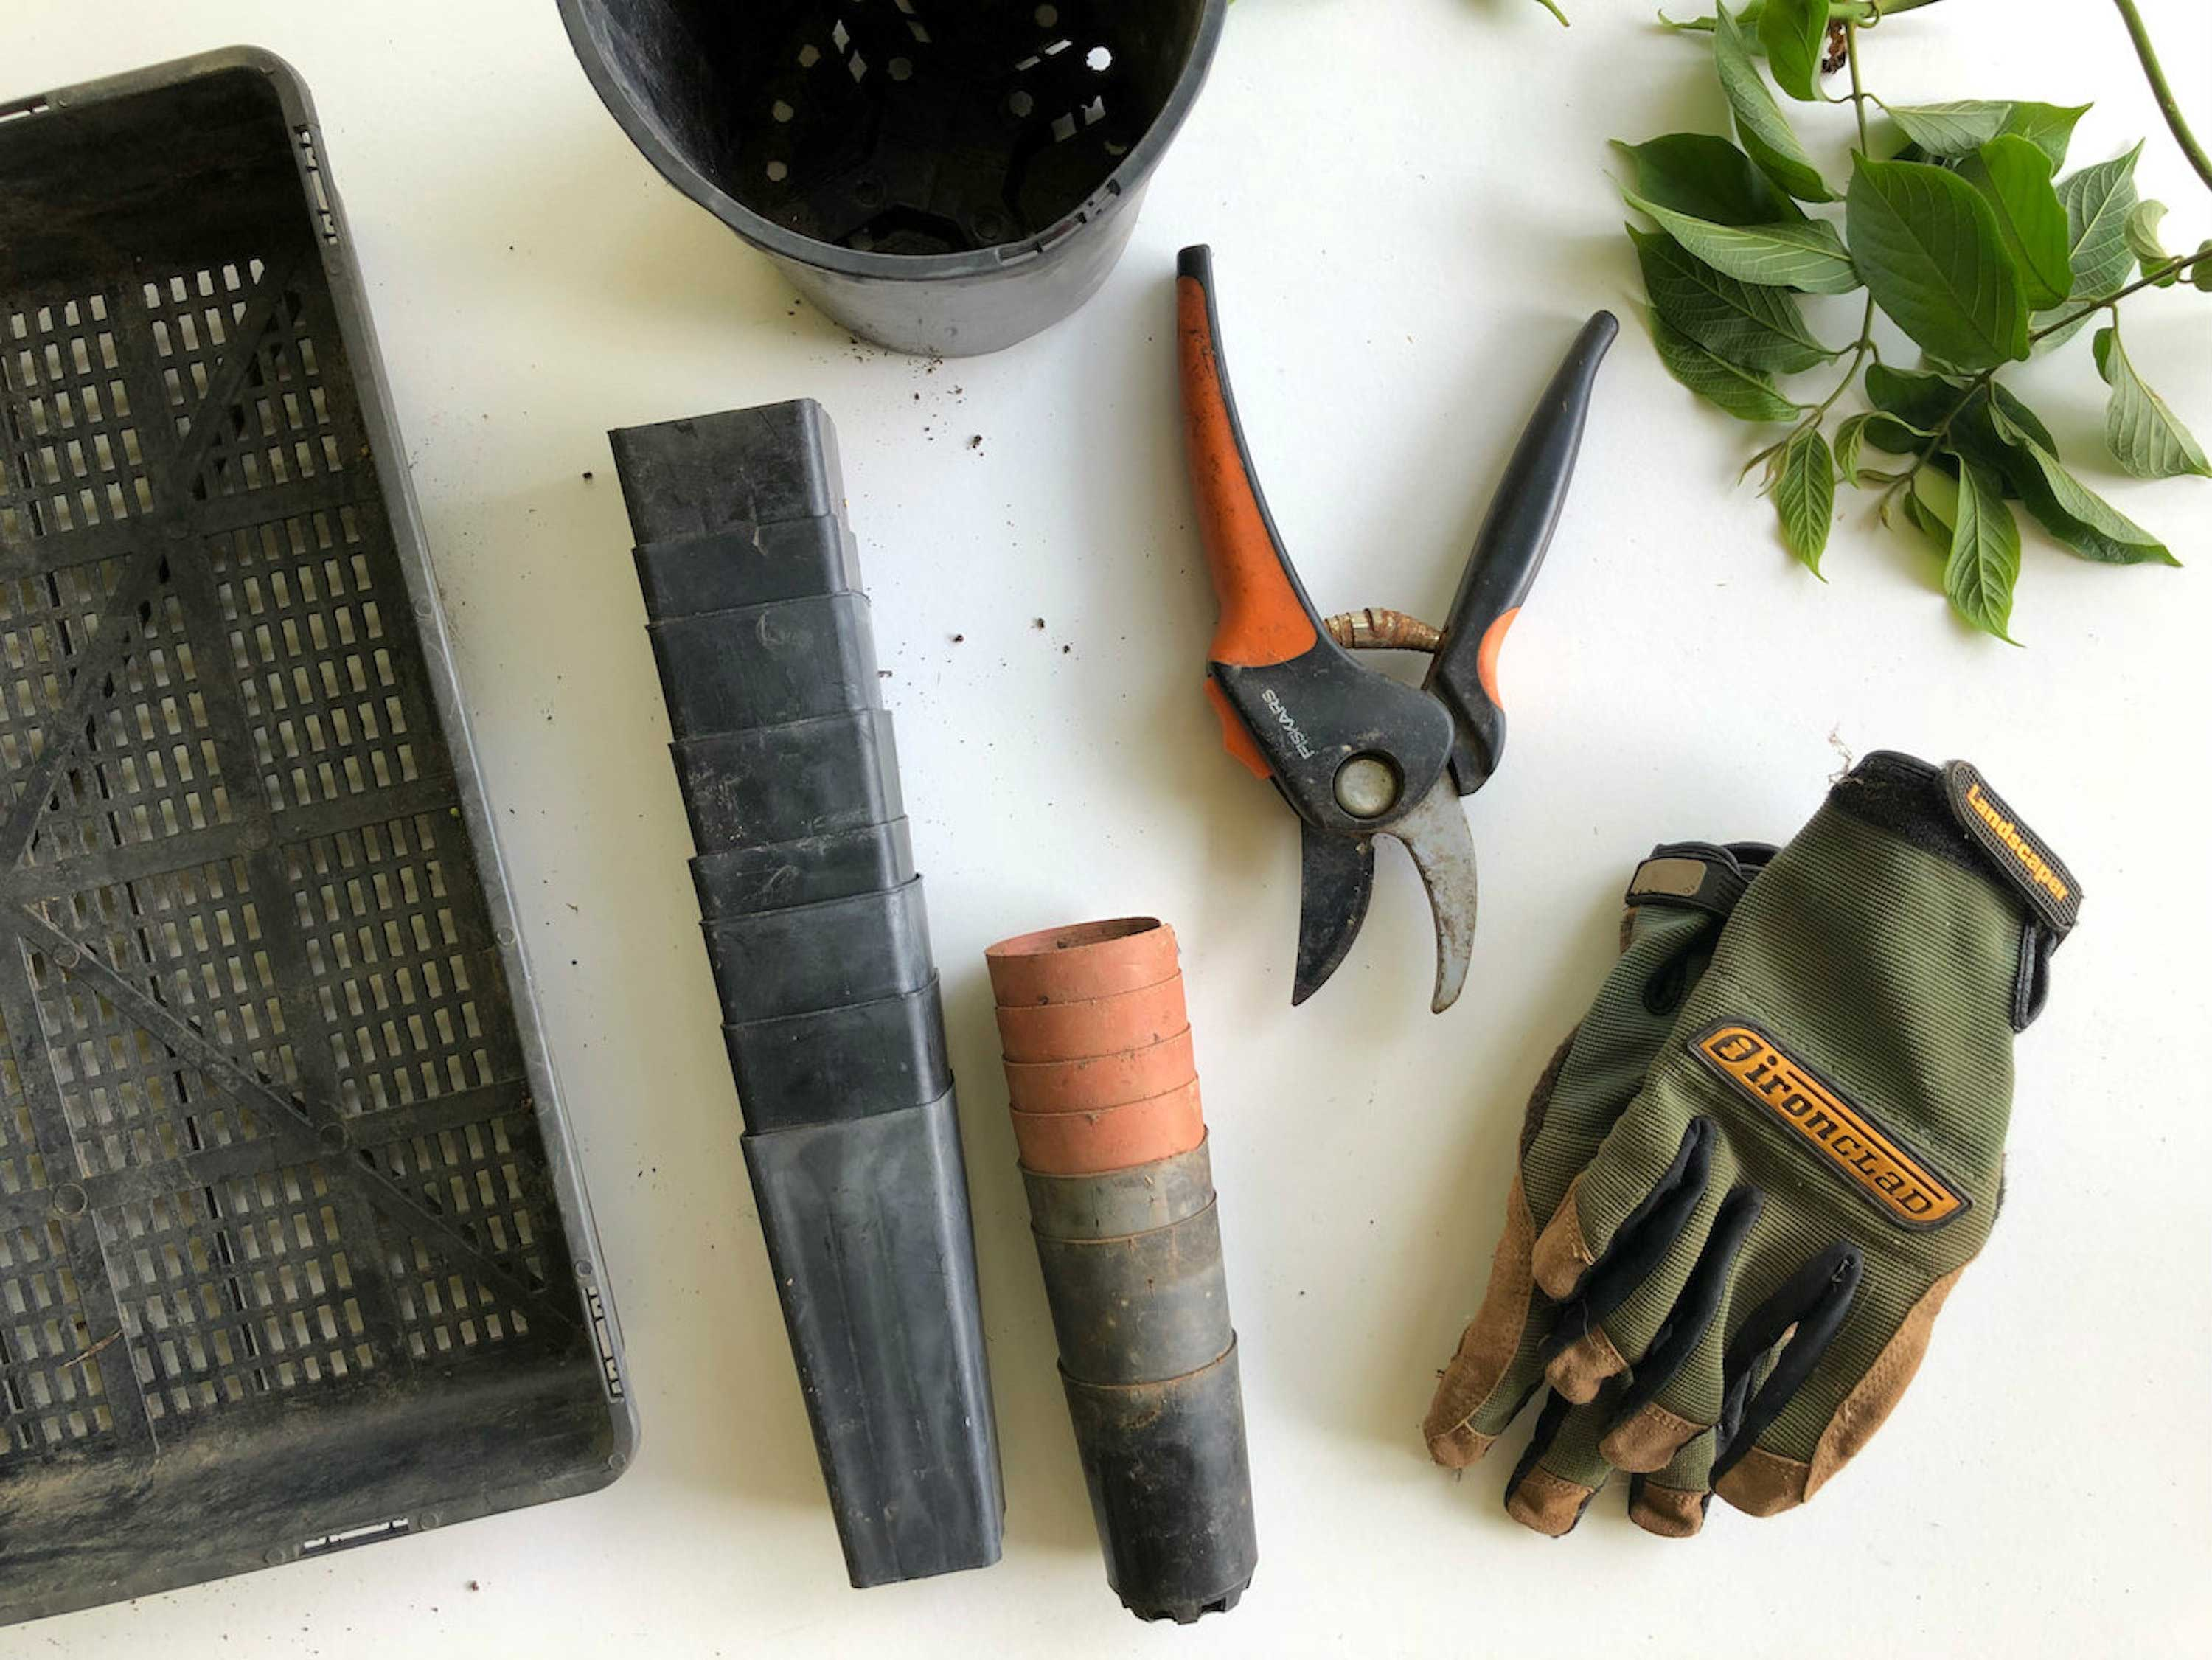 flat lay of gardening gloves, plant pots and garden scissors against white background